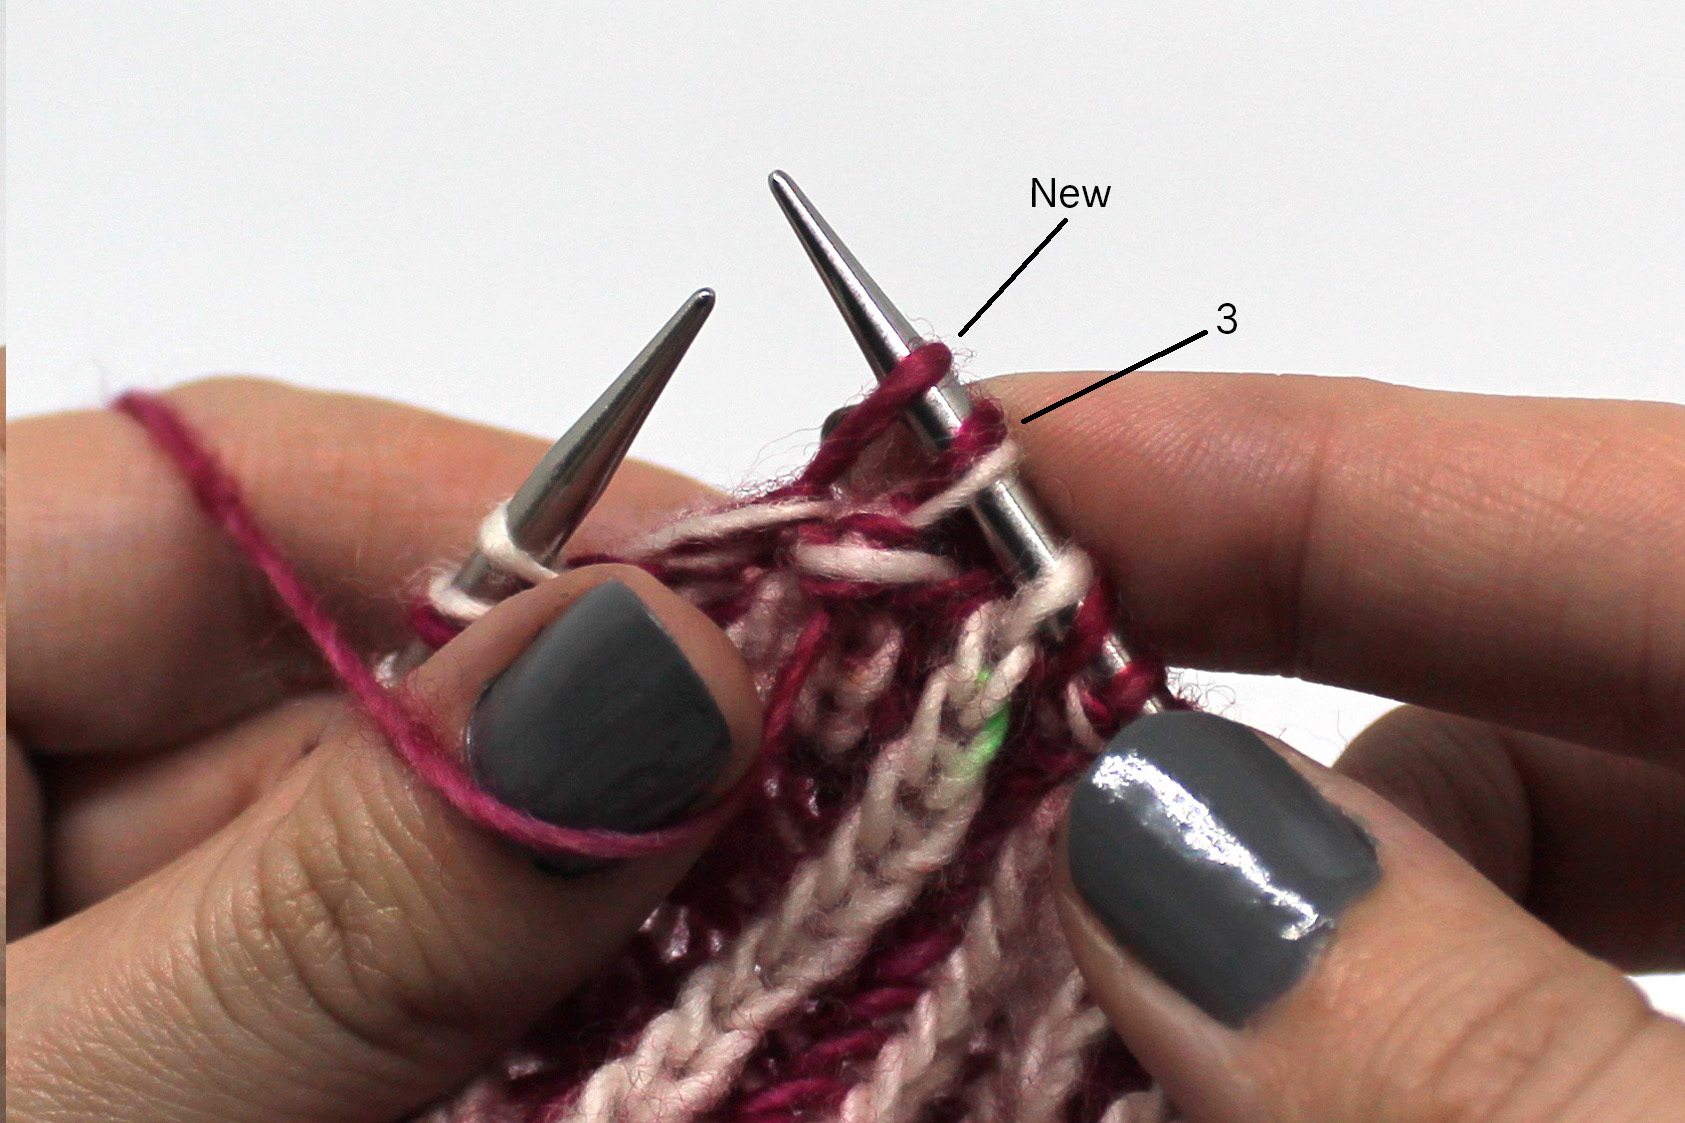 Stitch 3 has been slipped from the cable needle to the right hand needle, then the new stitch has been slipped to the left hand needle